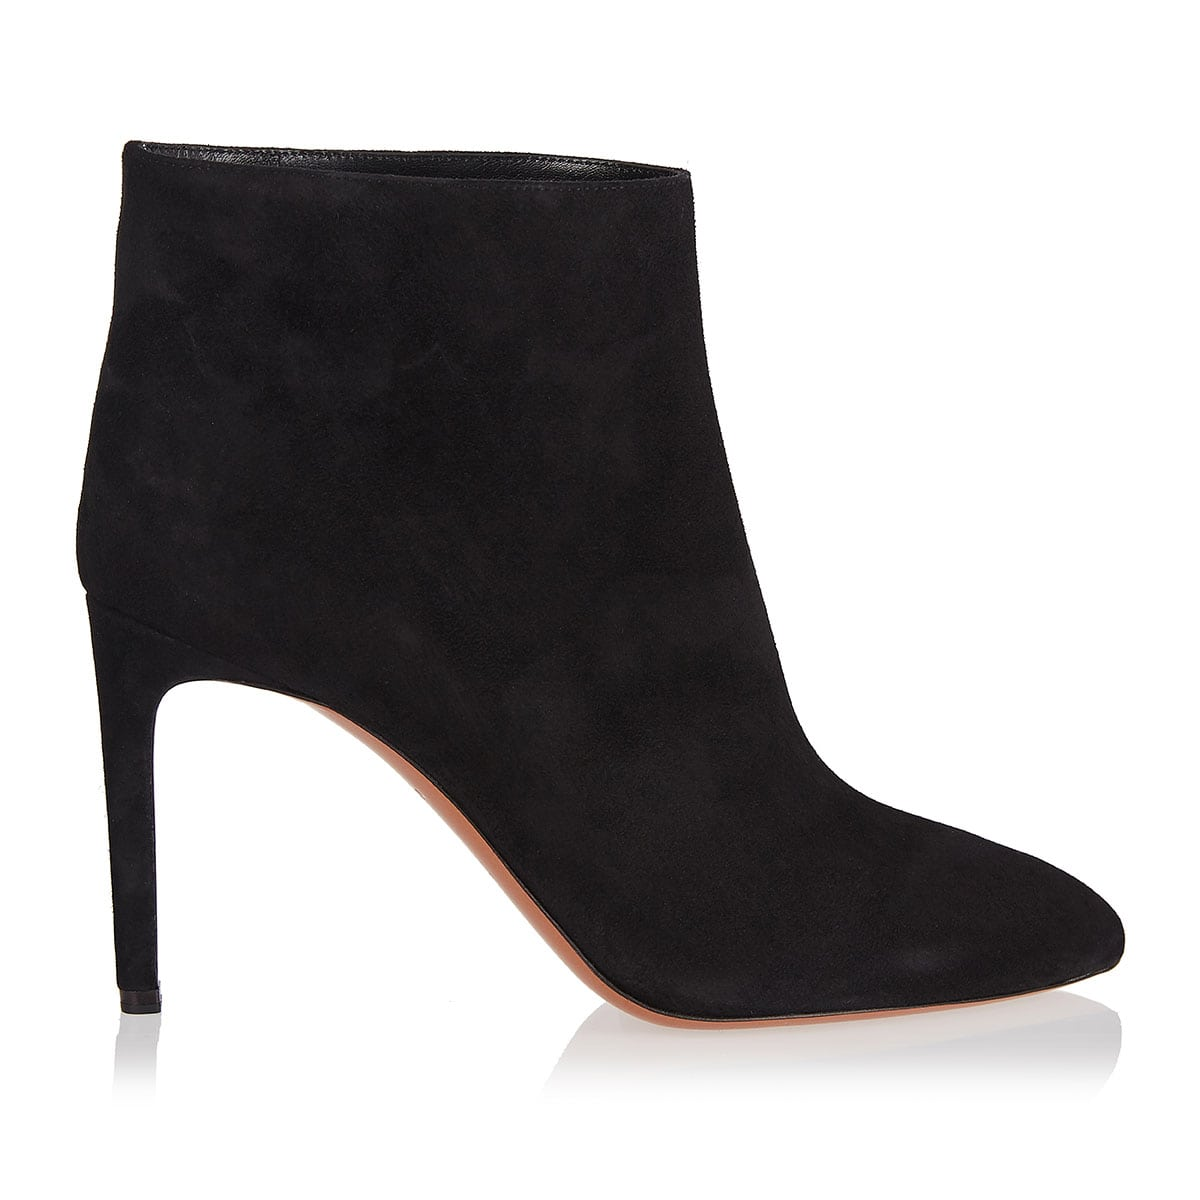 90 suede ankle boots